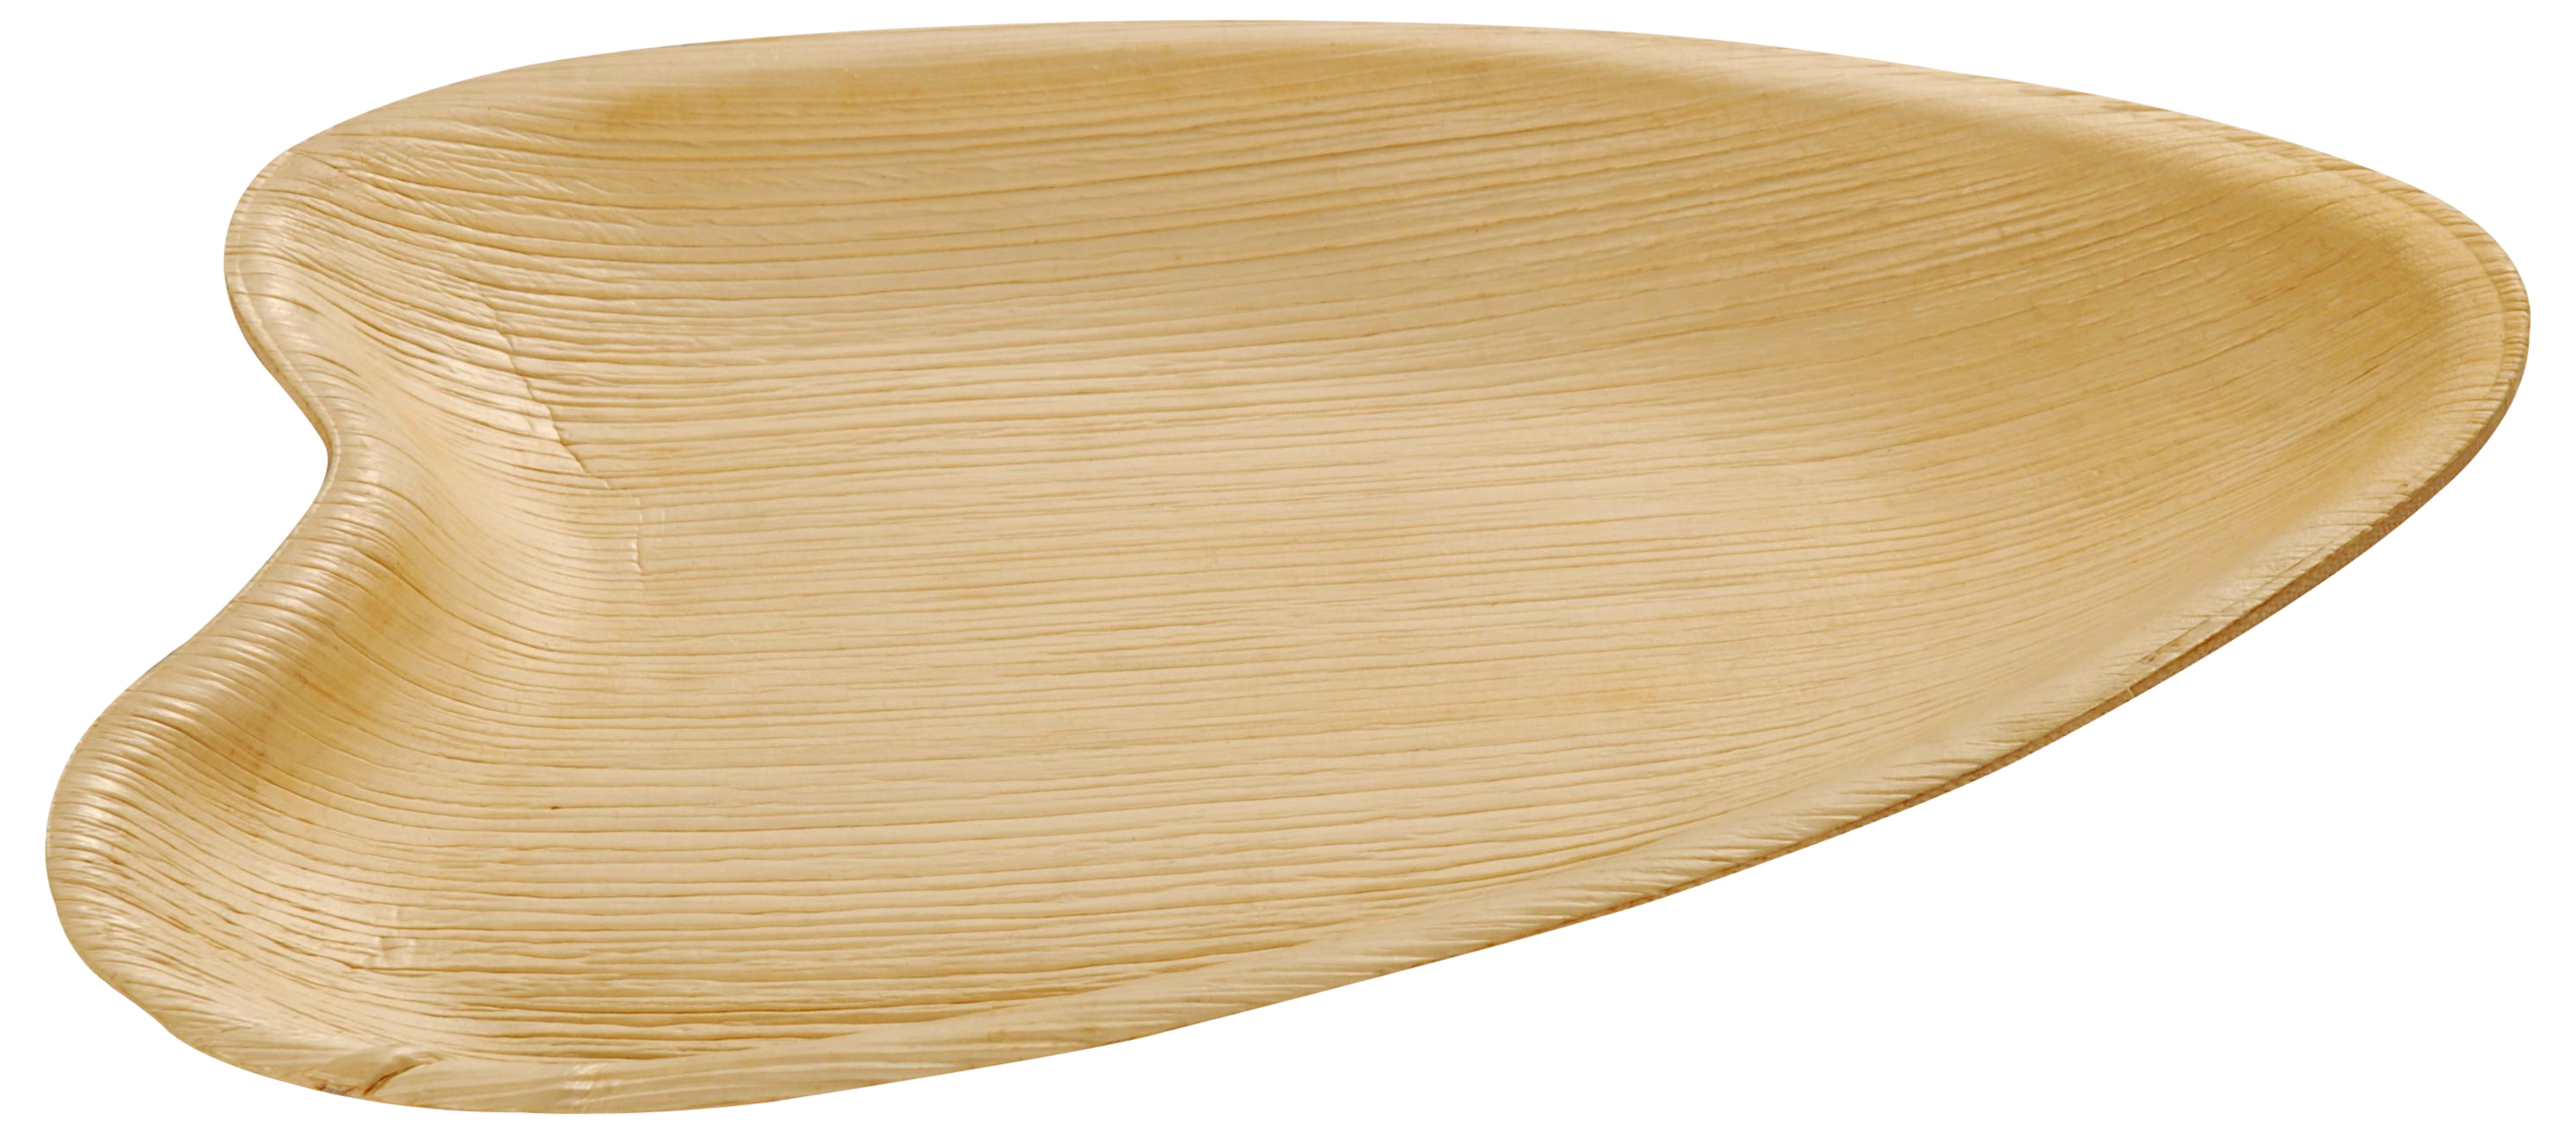 "Leaf & Fiber 100% Compostable, Sustainable and All Natural Palm Leaf Dinnerware, 10"" x 6"" Oval, 100 Count"